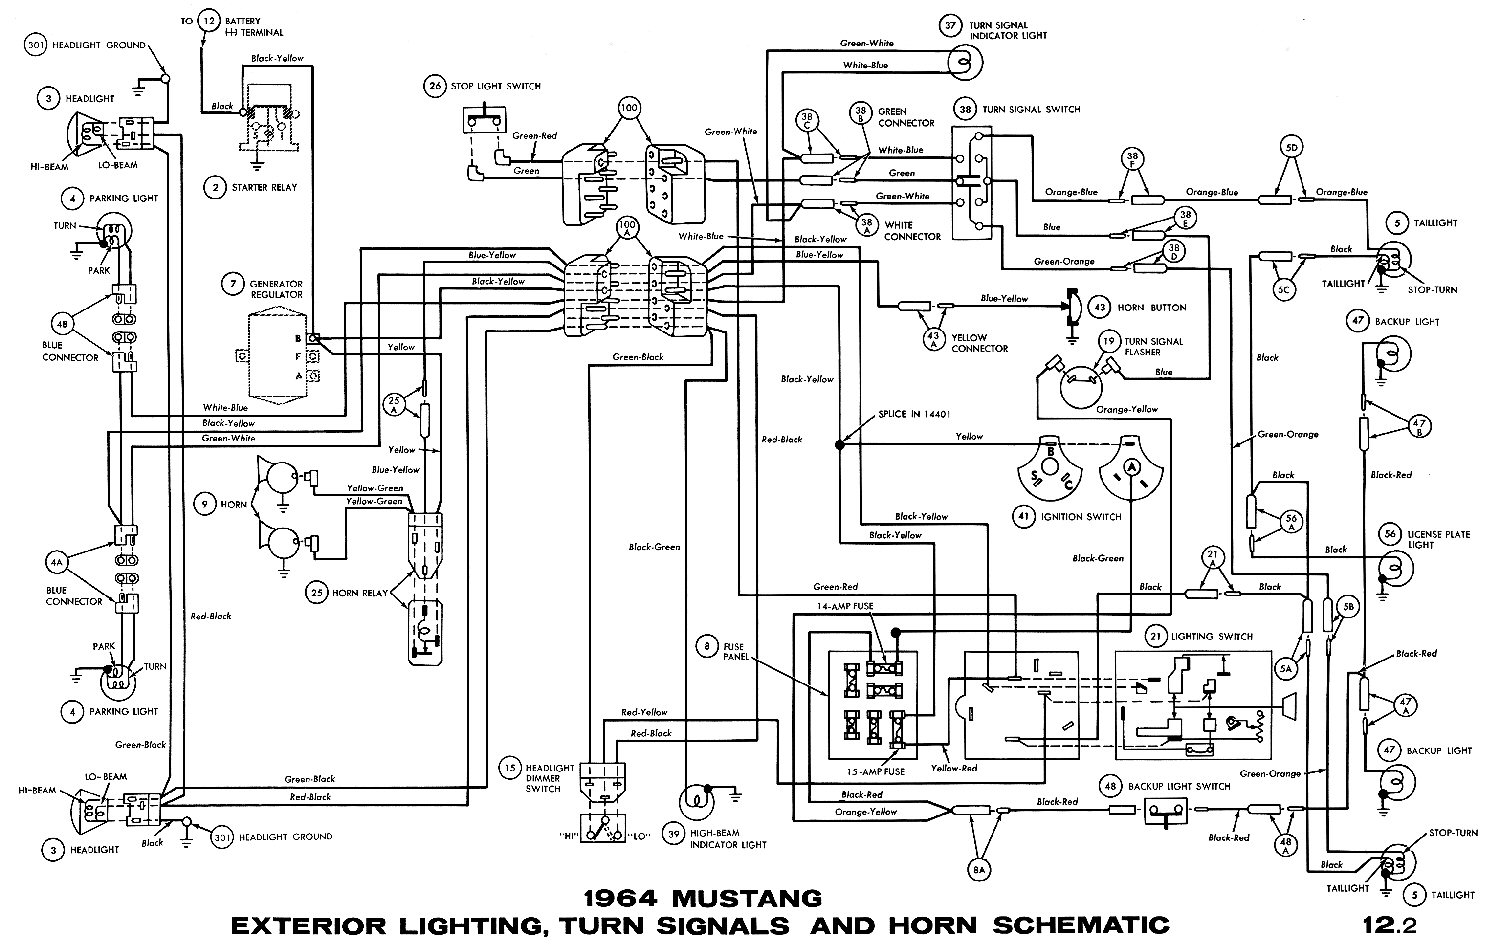 Ignition Switch Schematic together with 2011 Acura Tl Engine Diagrams in addition 1966 Chevy C10 Wiring Diagram For Dash Wiring Diagrams additionally 1977 Gmc Fuse Box Wiring also 1965 Mustang Wiring Diagrams. on 64 ford mustang headlight switch wiring diagram